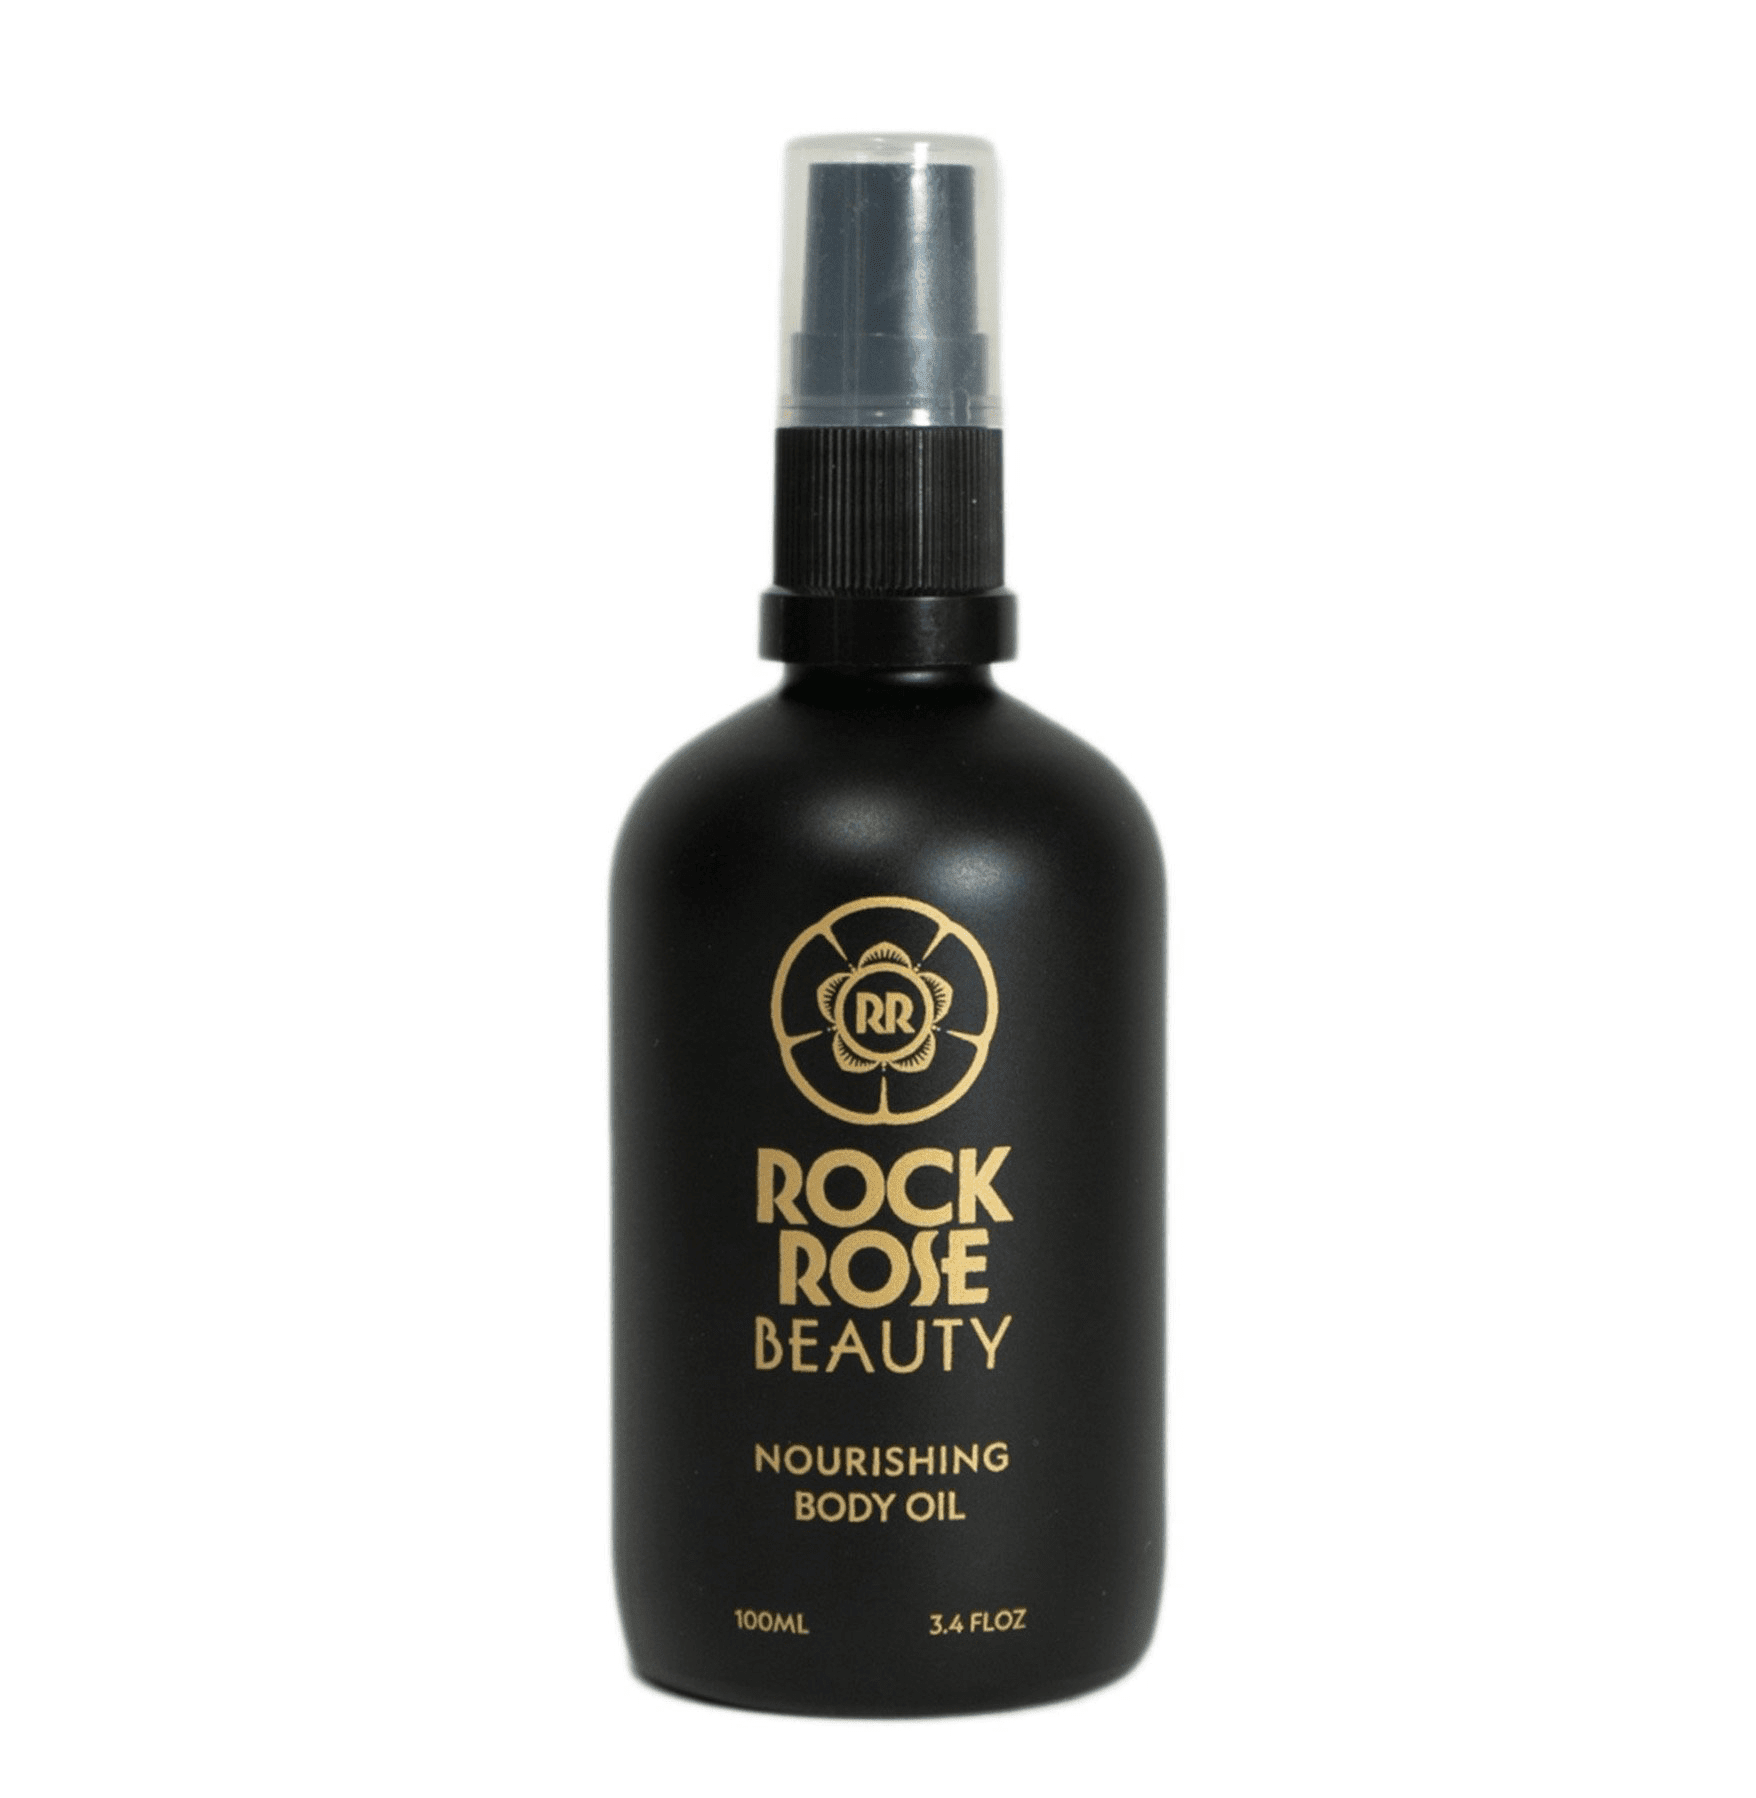 Rock Rose Beauty Nourishing Body Oil